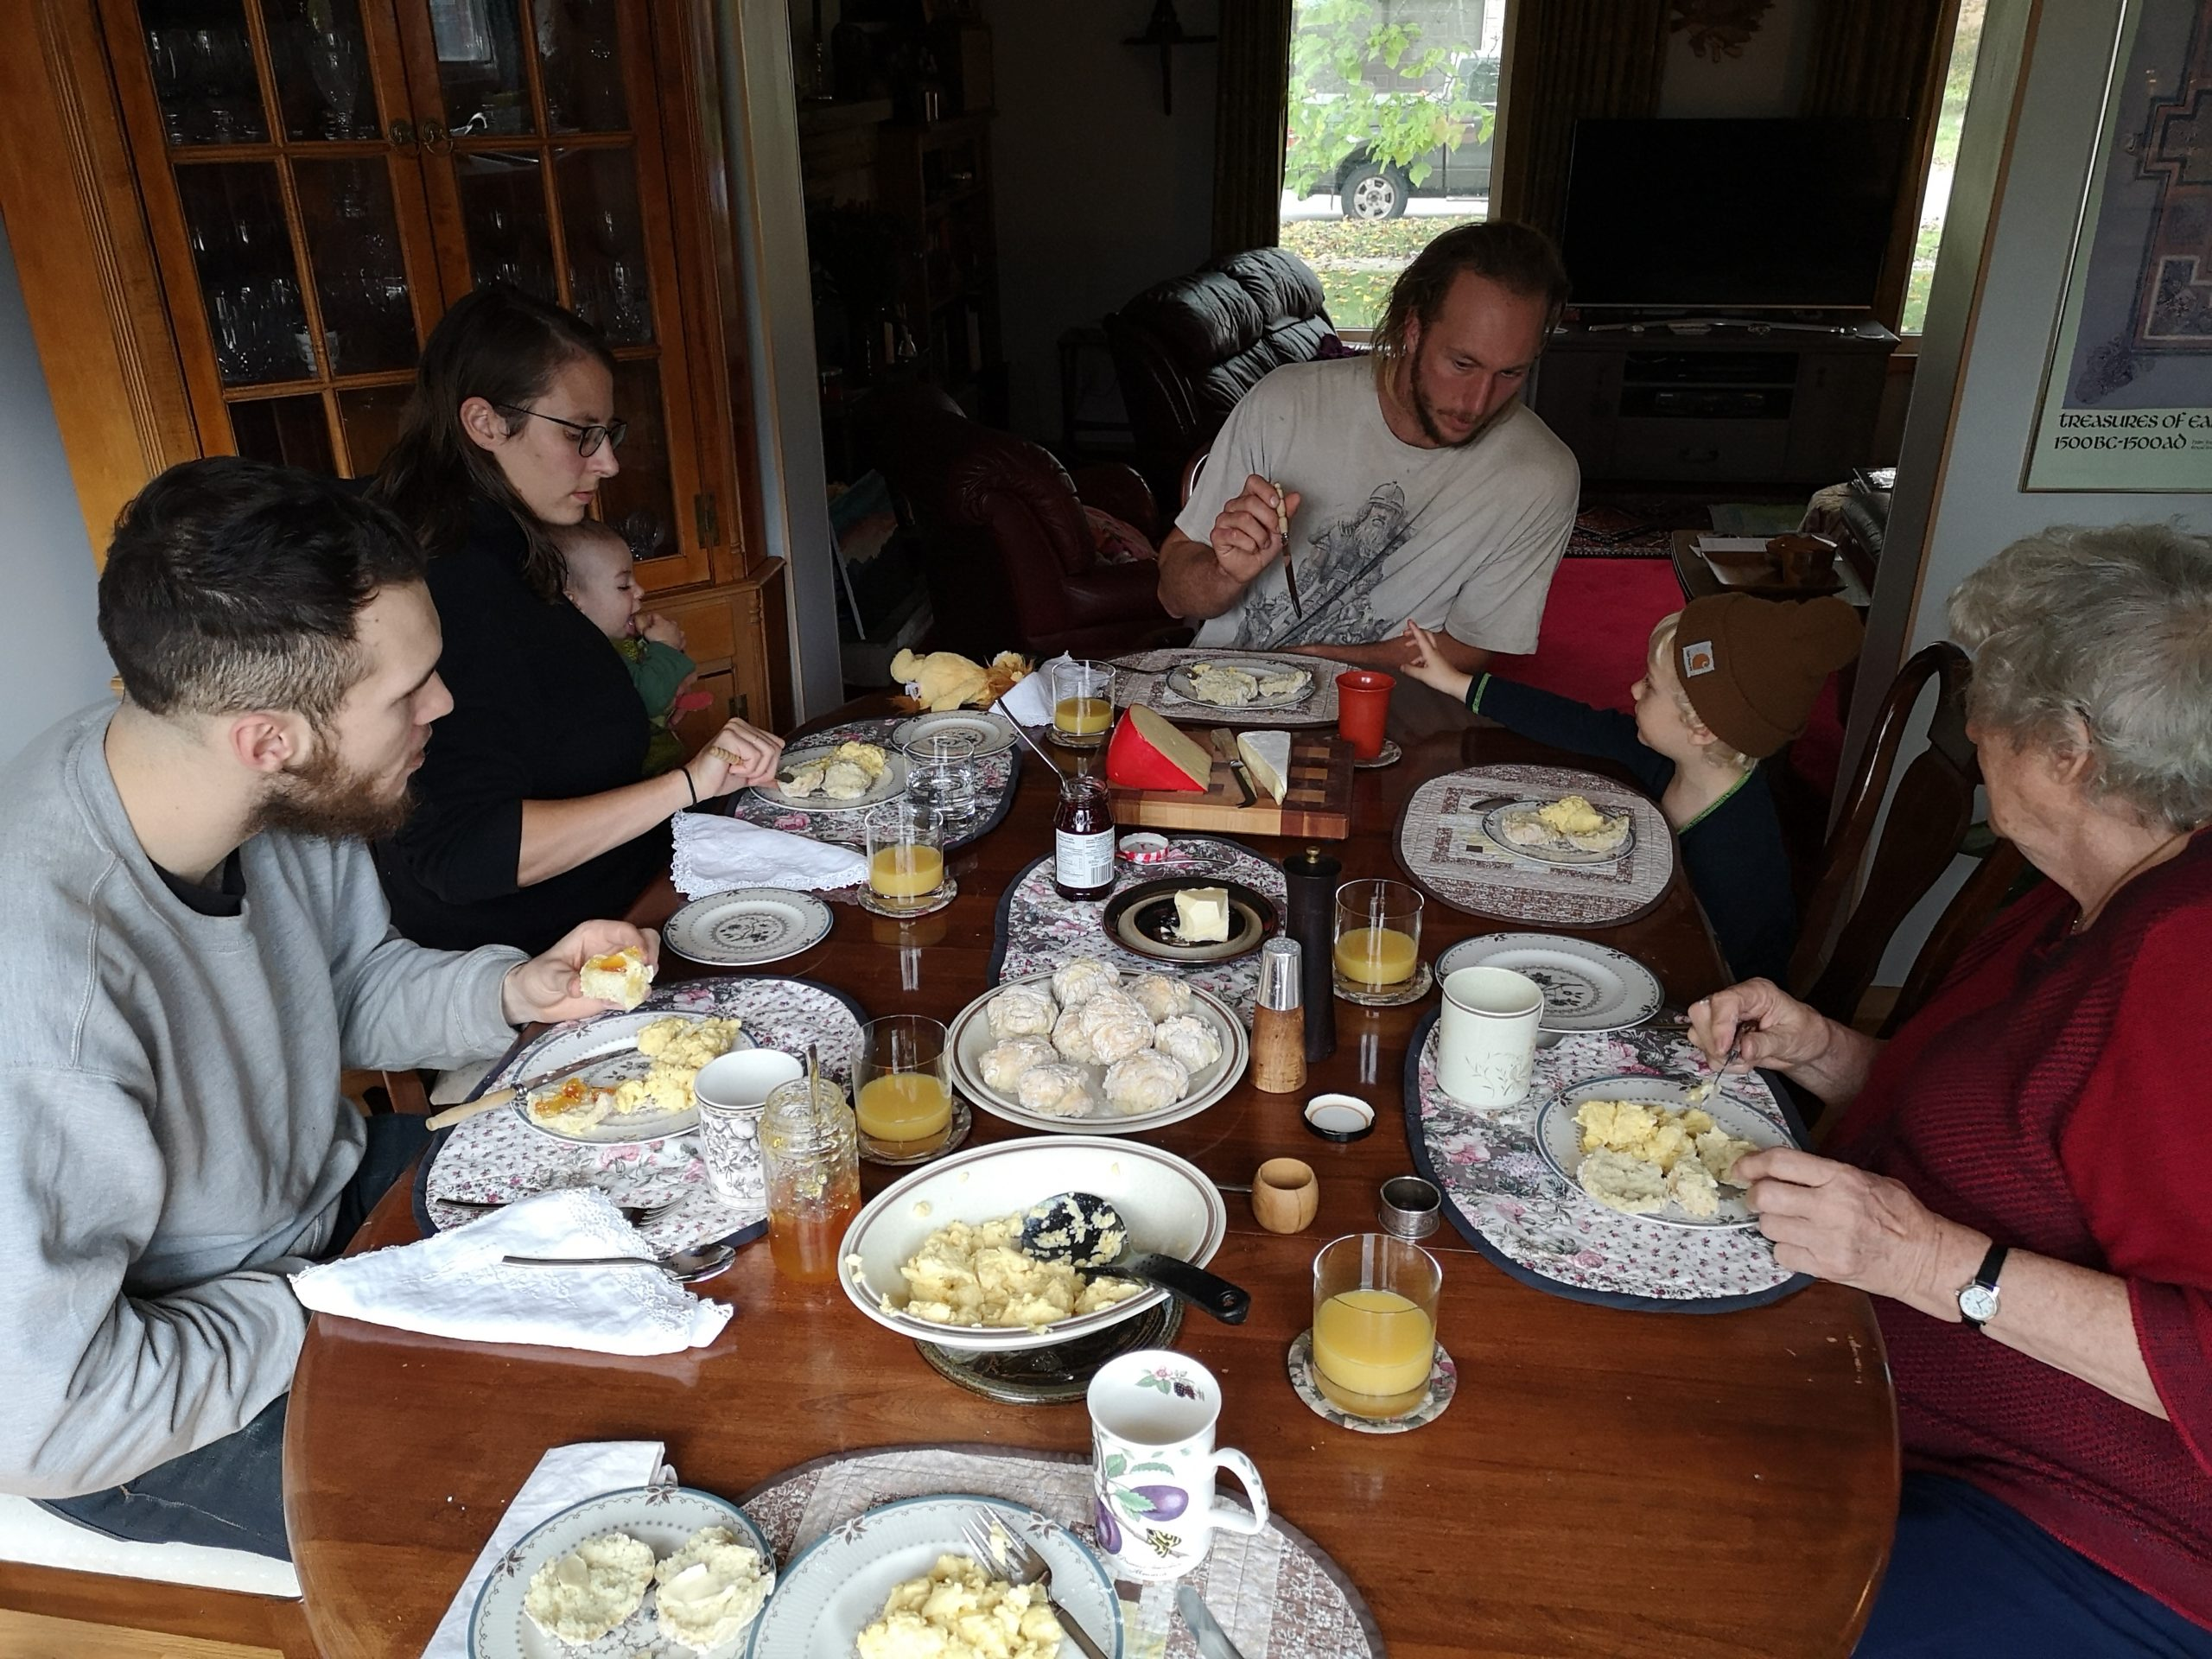 A family sitting around the dinner table eating breakfast